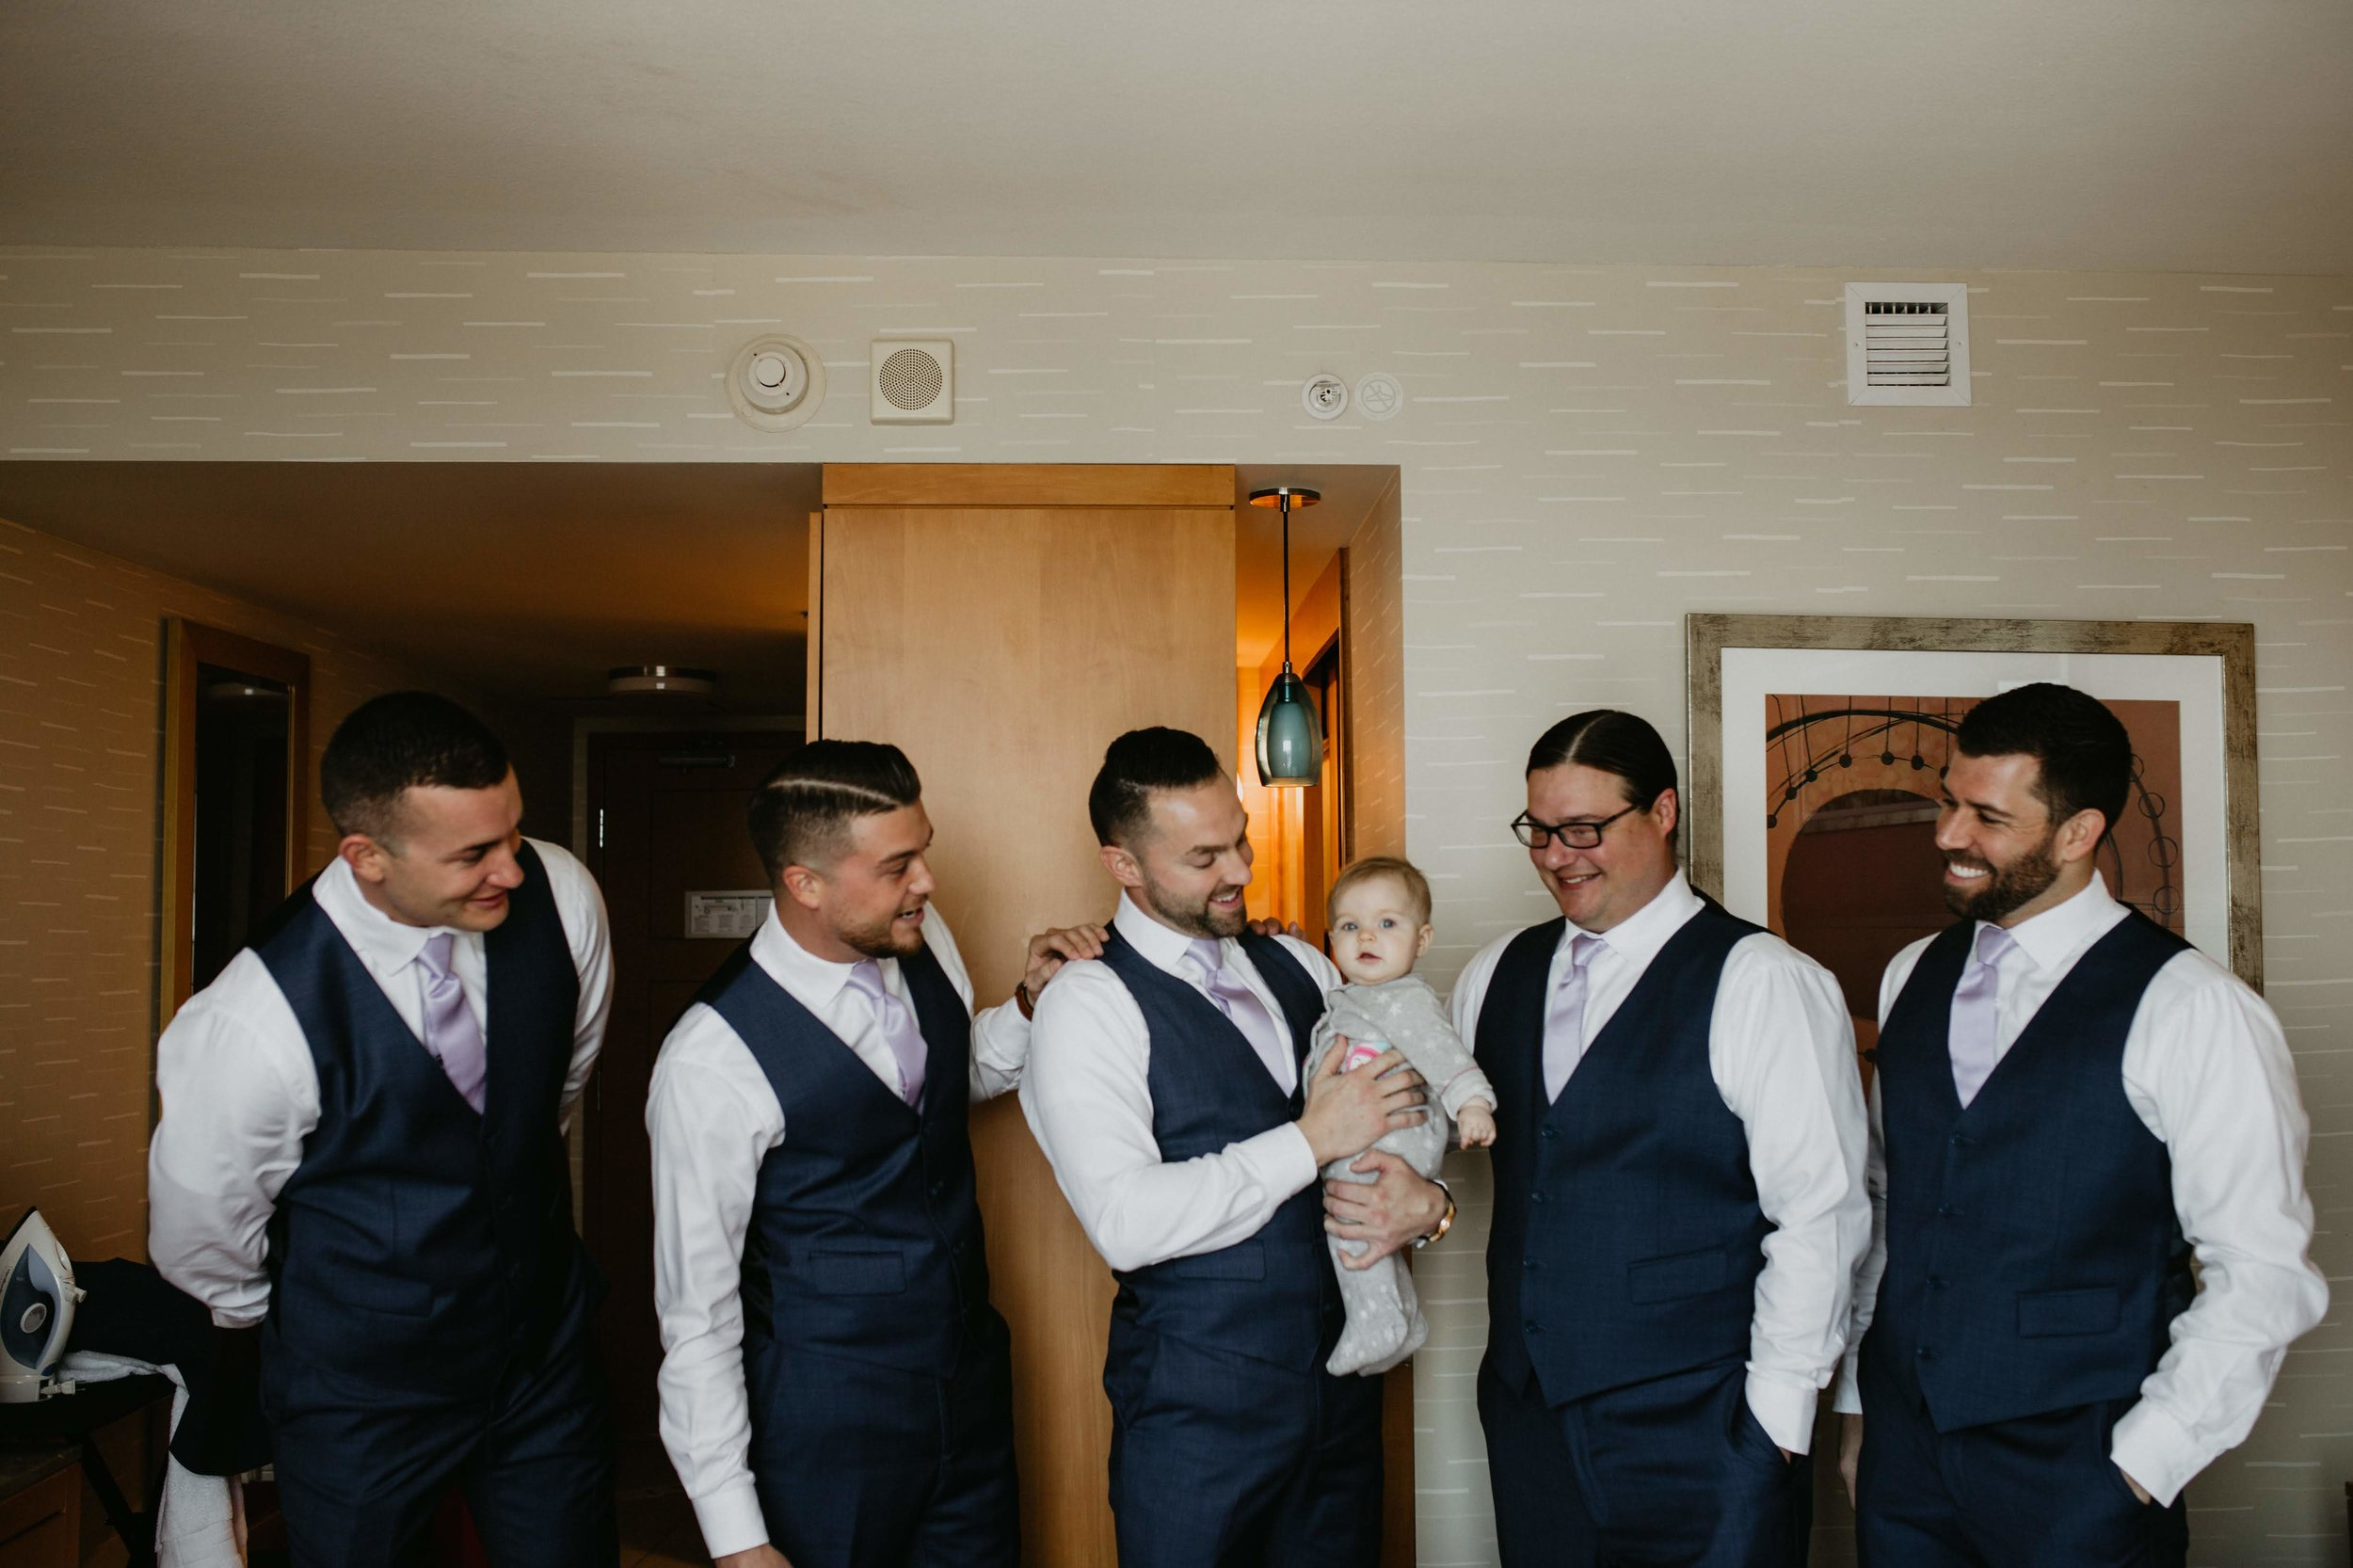 Jimmy & Daryl's daughter, Eastyn, definitely stole the show throughout the wedding day!